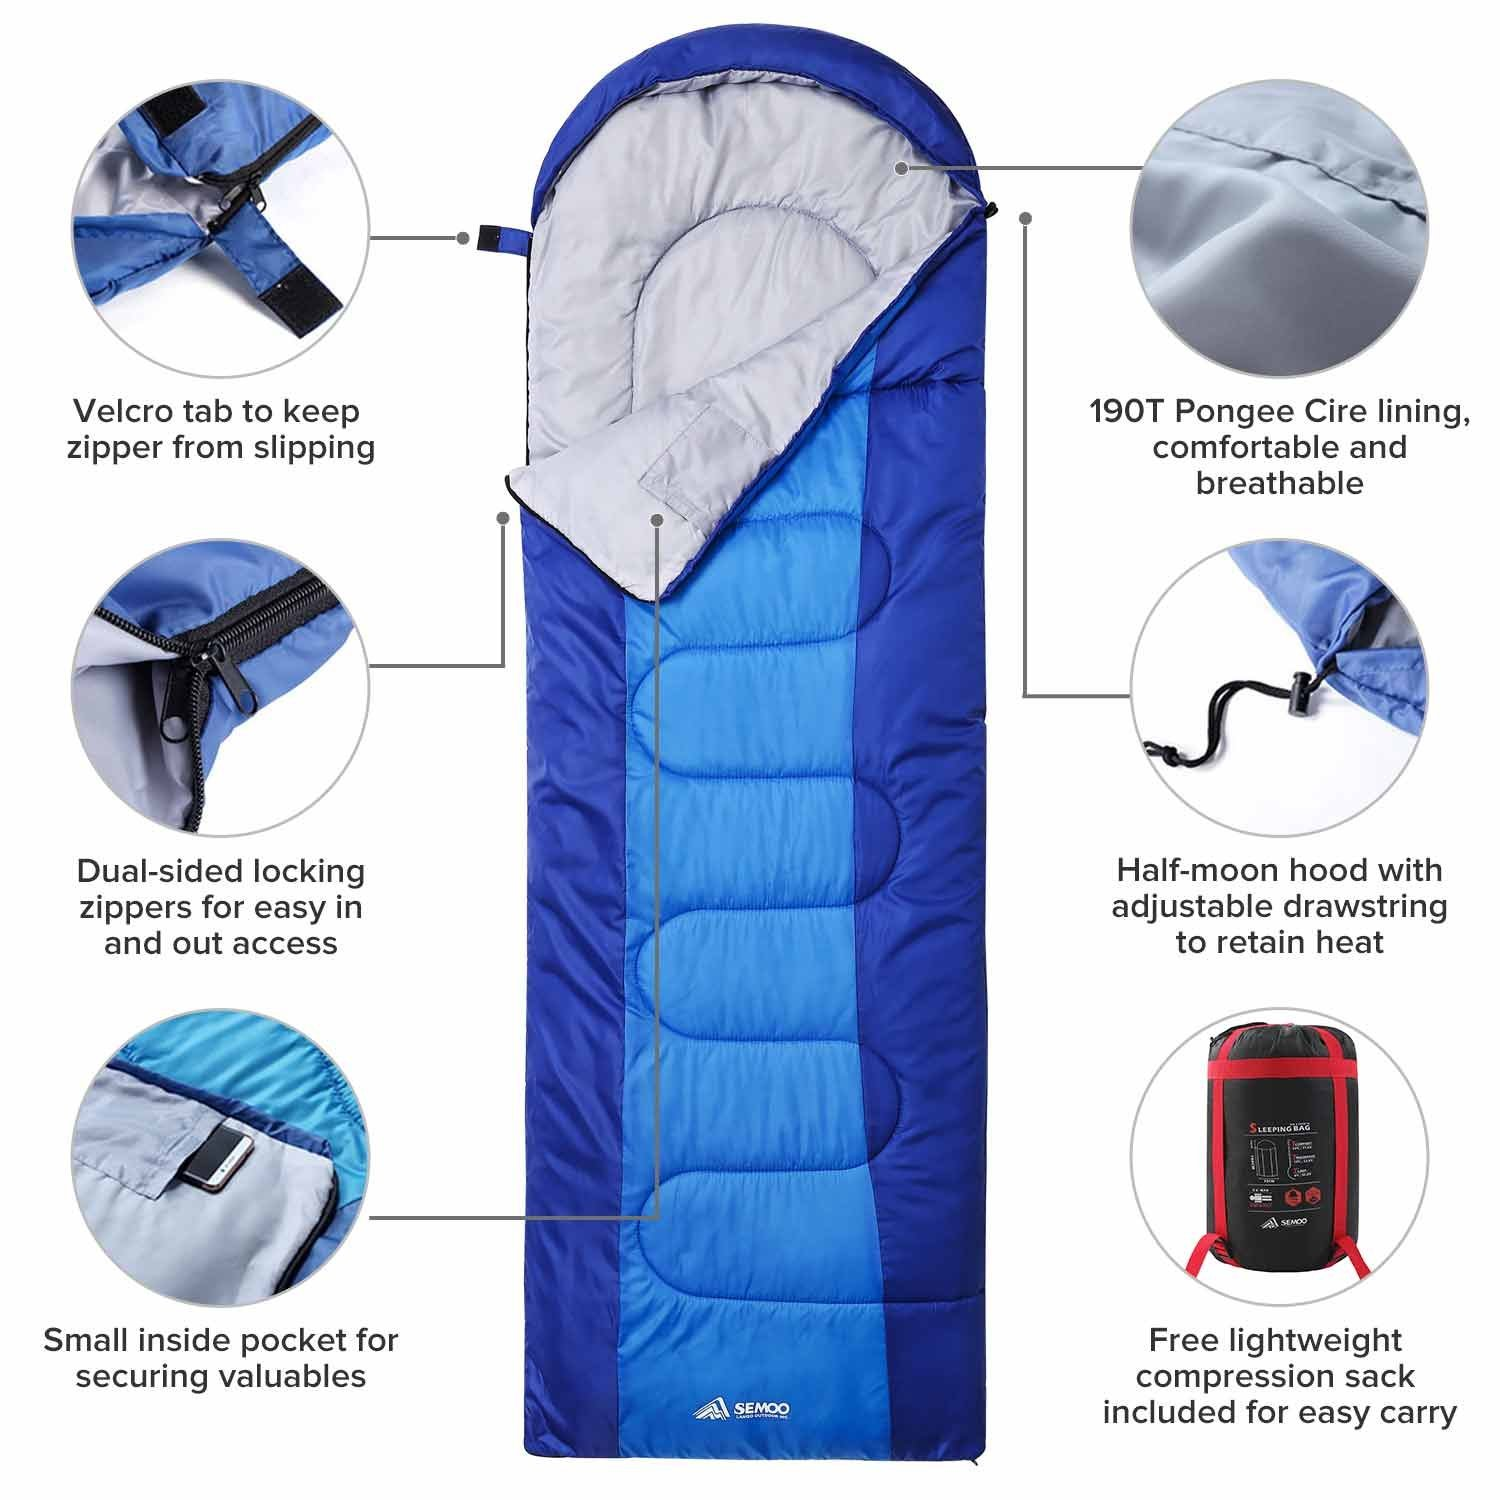 Lightweight Portable Waterproof Hiking Great for 3-4 Season Traveling Camping SEMOO Backpacking Sleeping Bag Comfort with Compression Sack